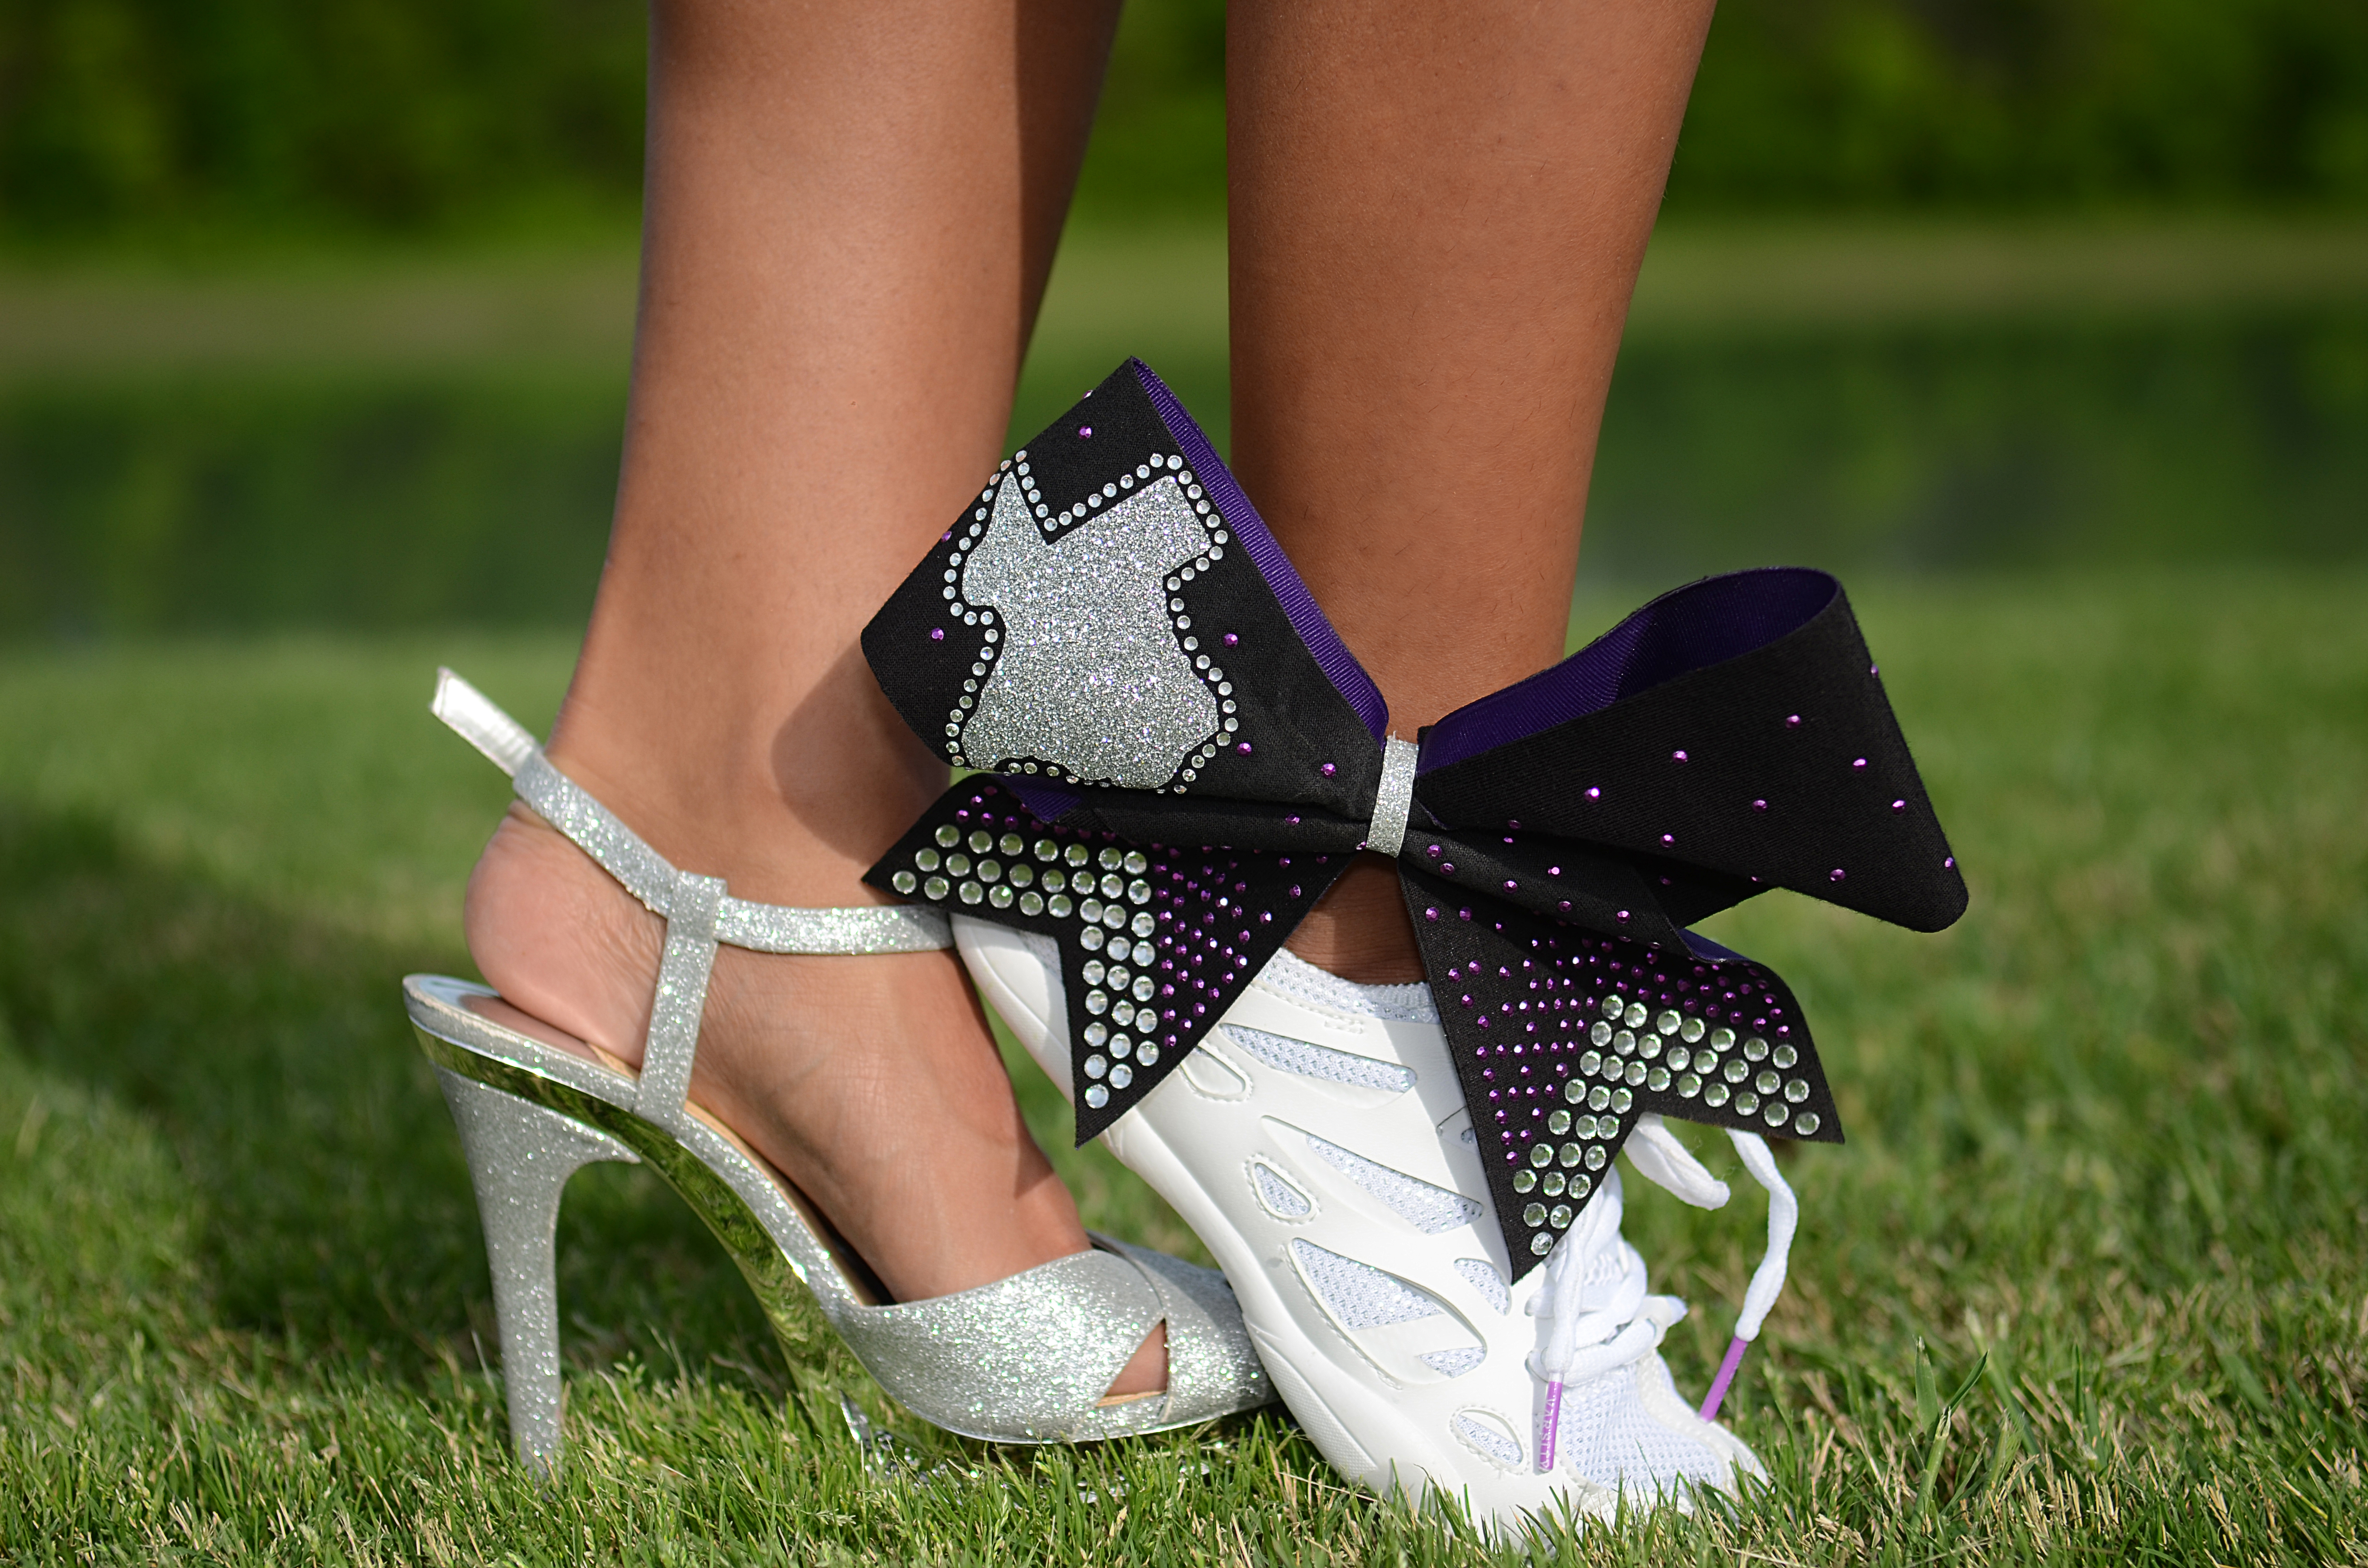 Cheer Shoe Senior Pictures